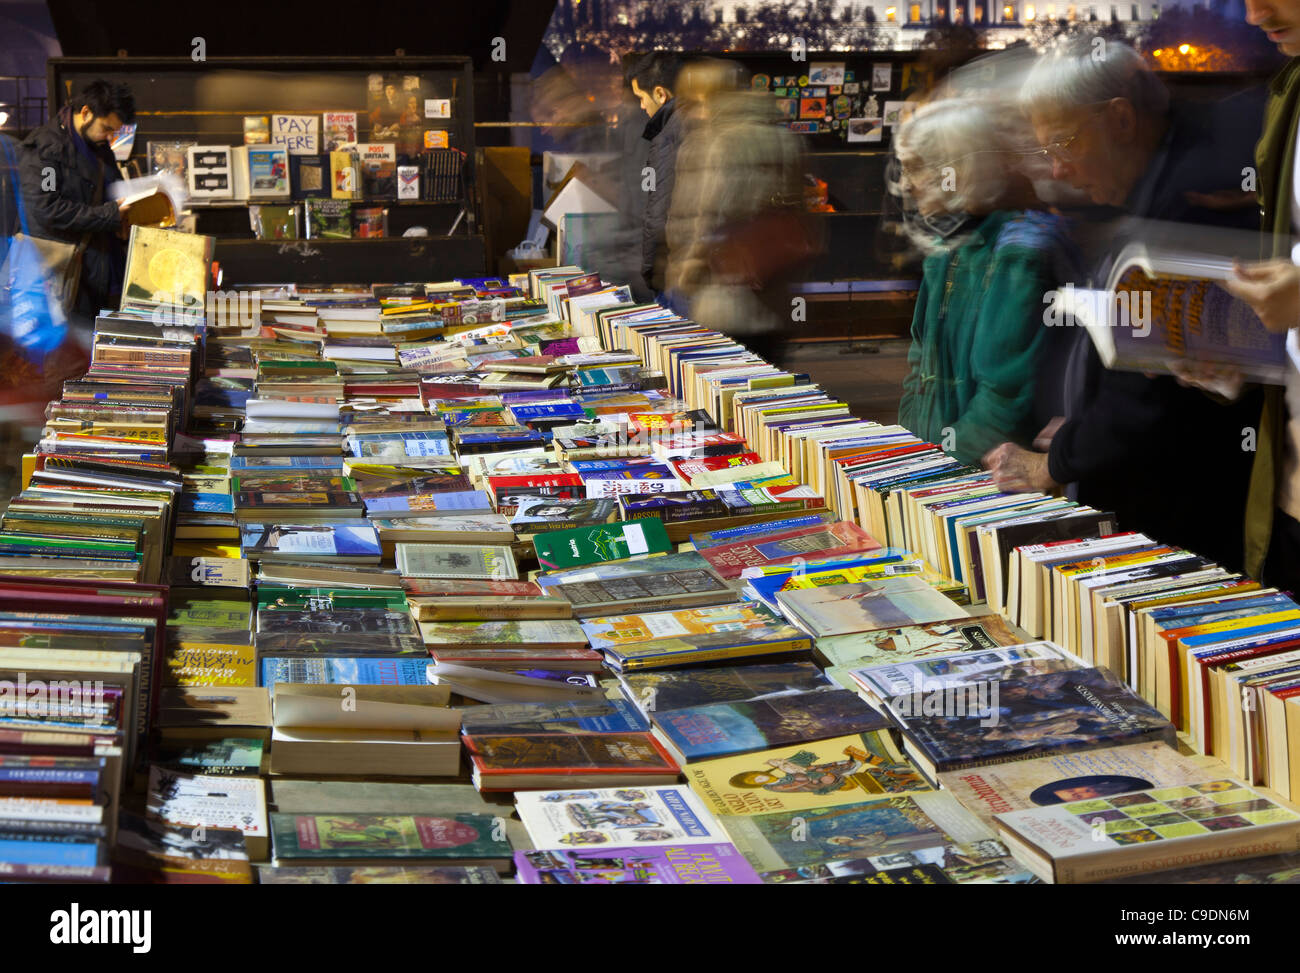 The open air secondhand book sales on the South Bank London before Christmas at dusk - Stock Image